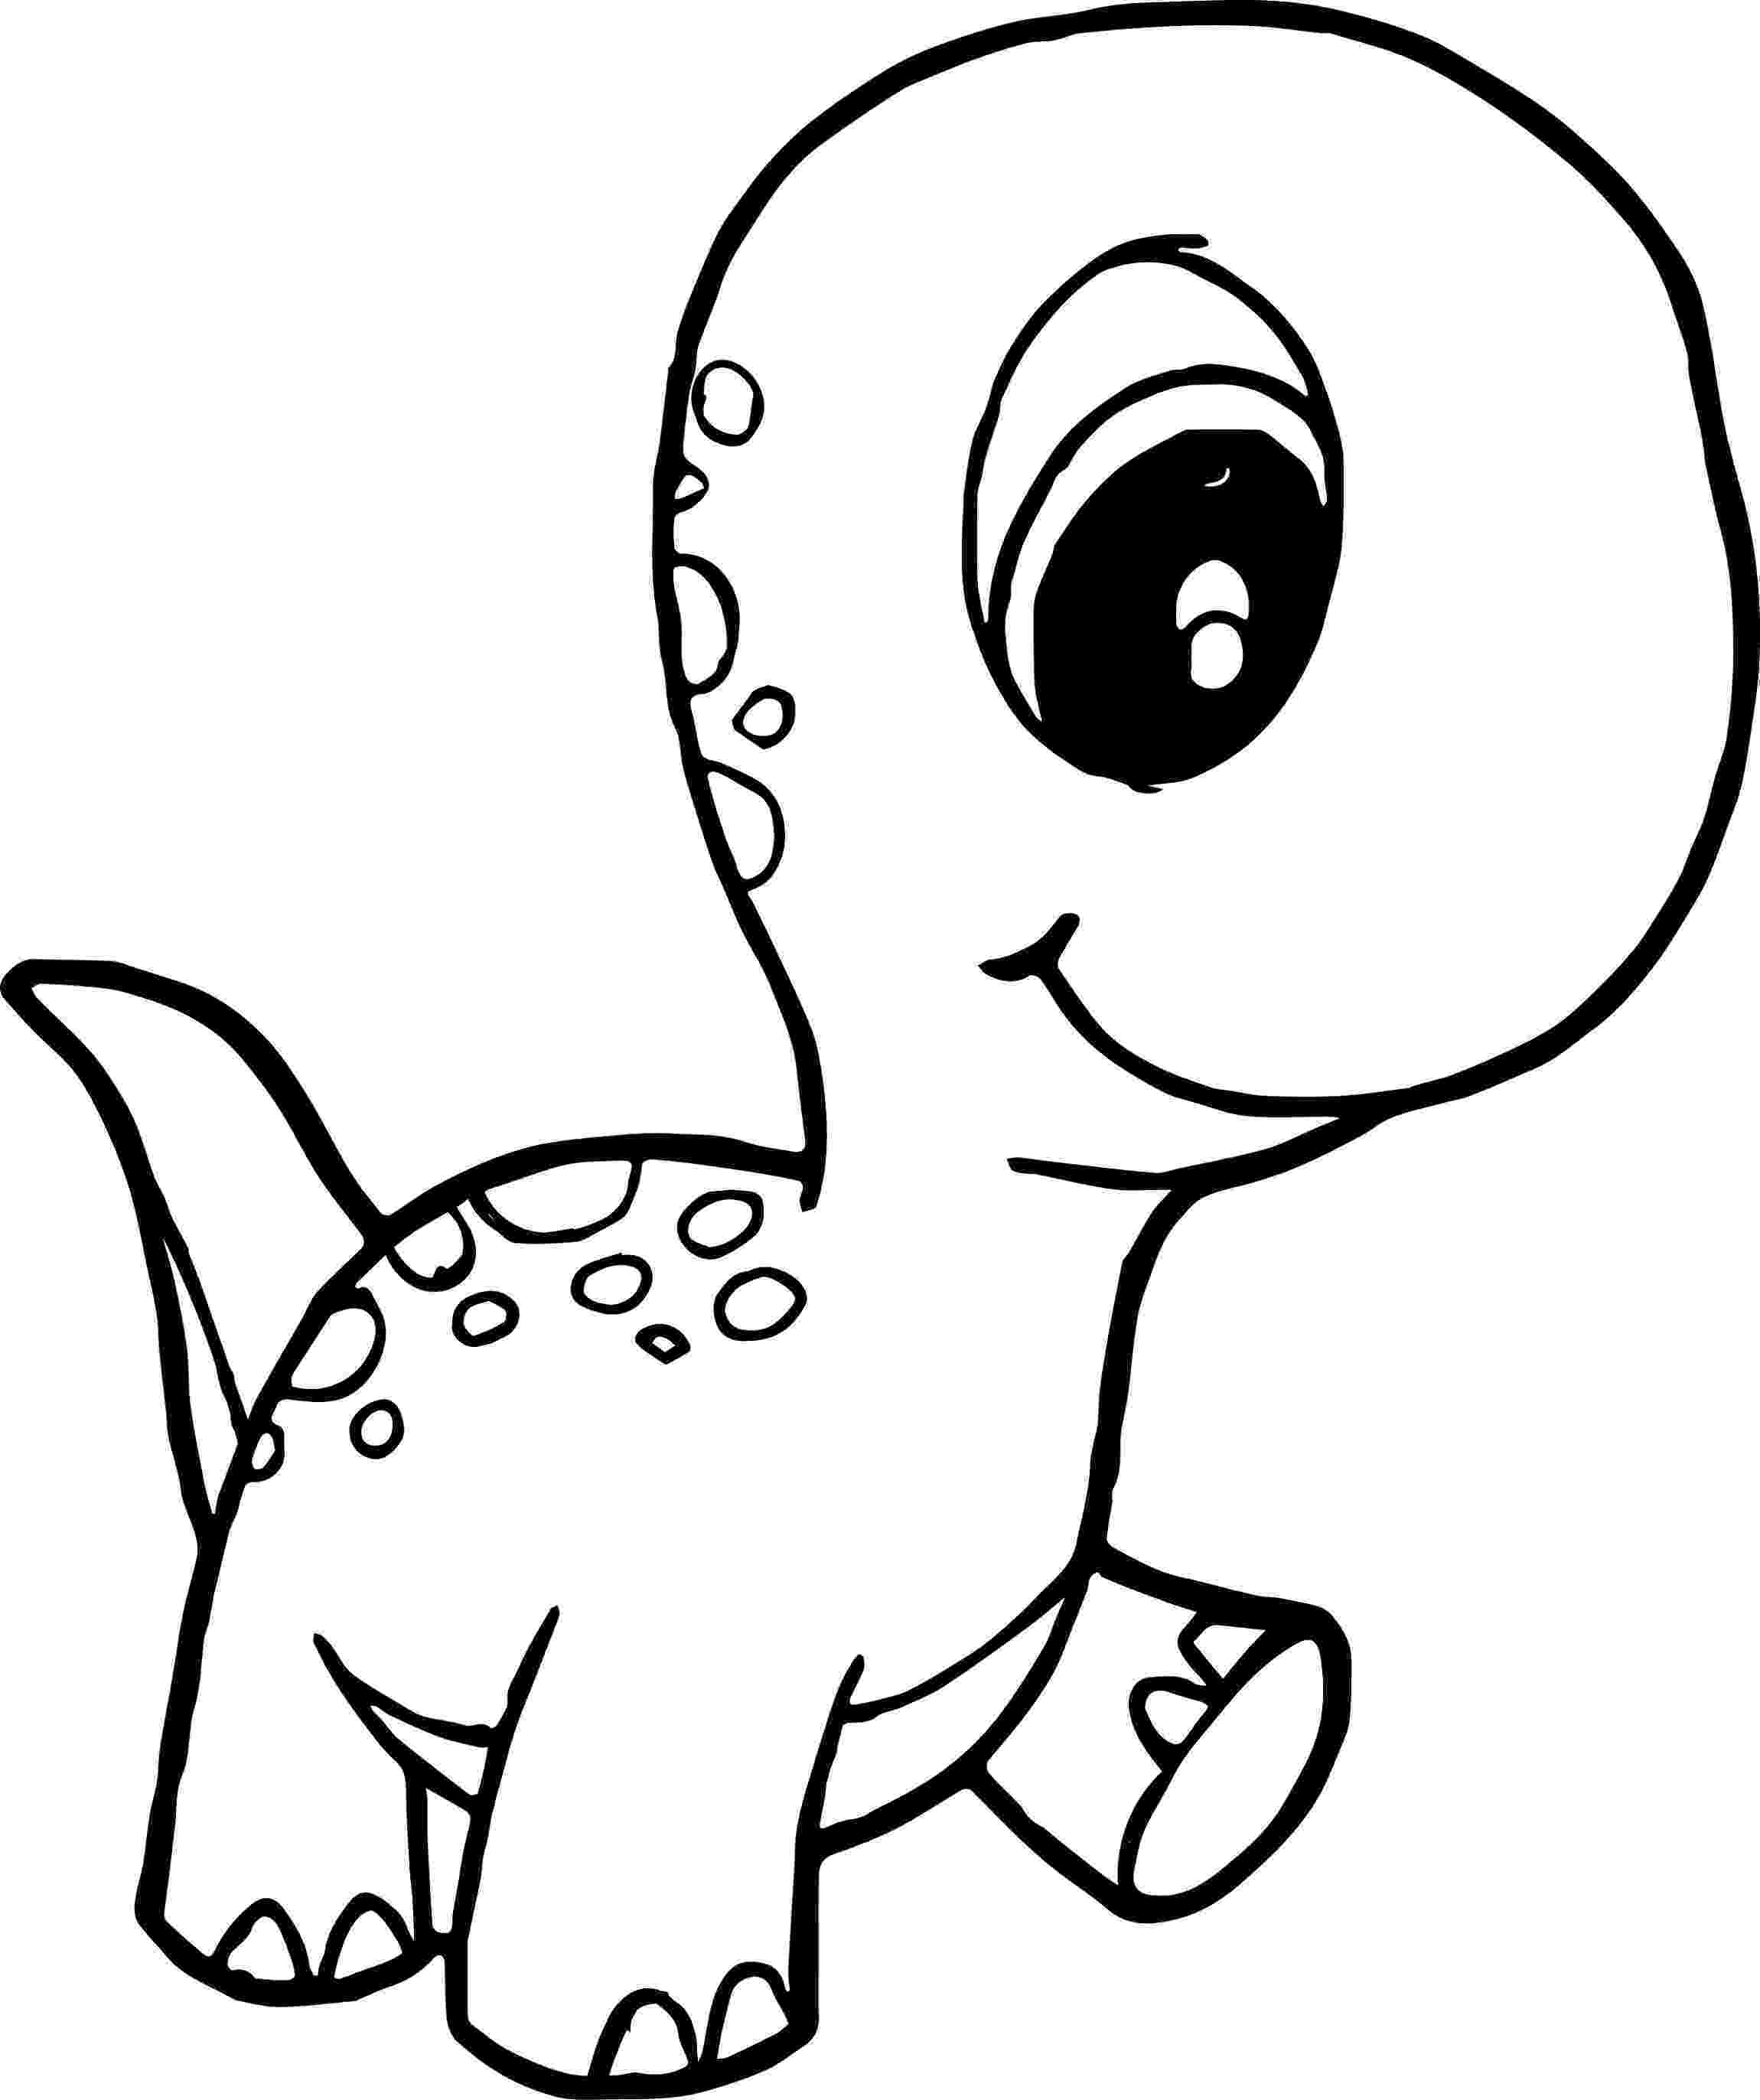 colouring dinosaur 25 dinosaur coloring pages free coloring pages download dinosaur colouring